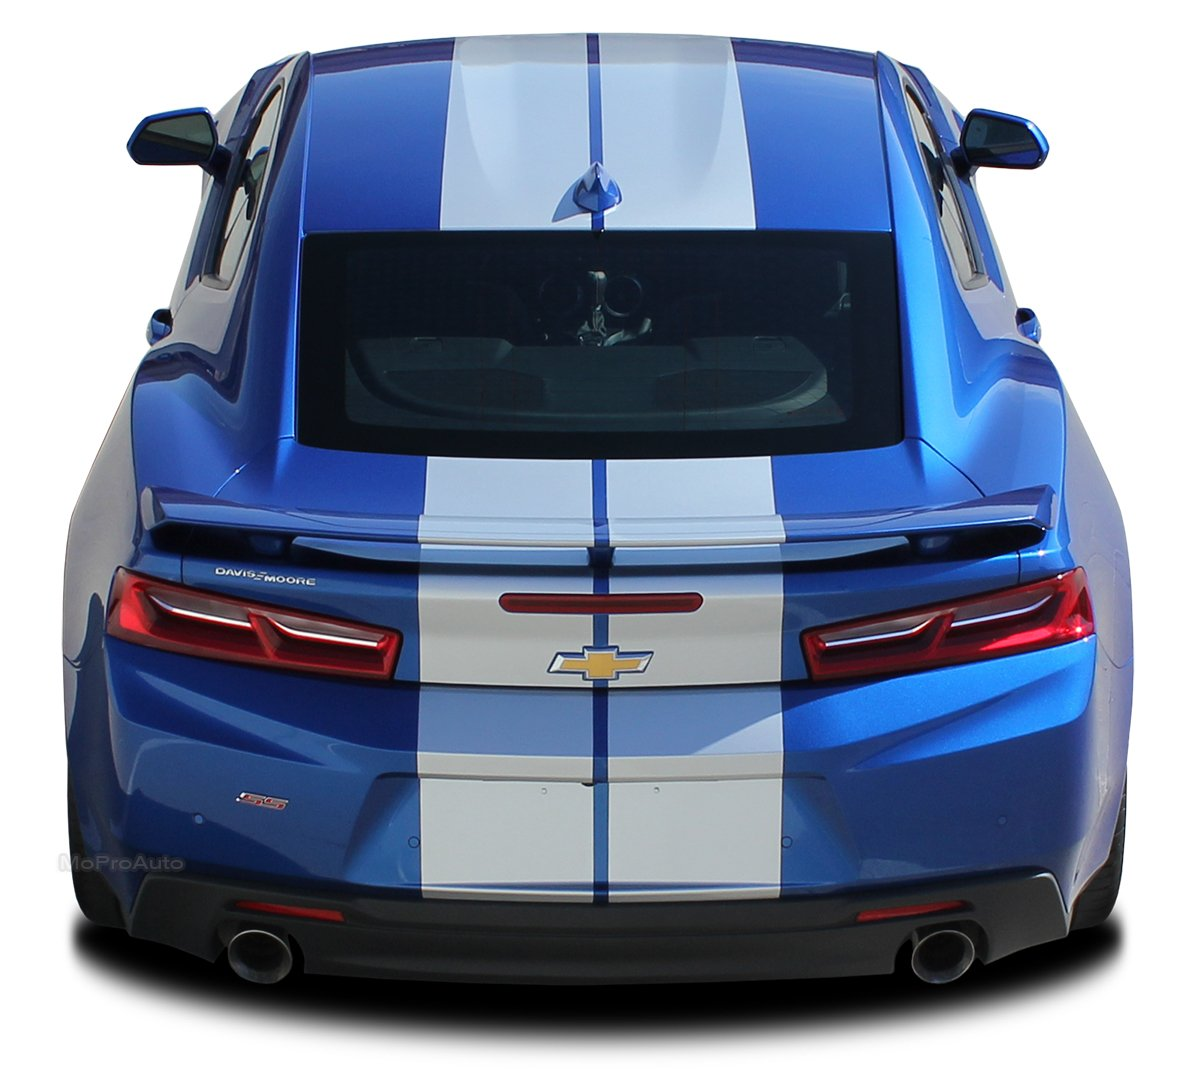 Amazon.com: TURBO RALLY SS : 2016 2017 2018 Chevy Camaro Vinyl Graphics Rally Hood Trunk Spoiler Racing Stripes Vinyl Graphic 3M Decal Kit (SS MODEL ONLY) ...